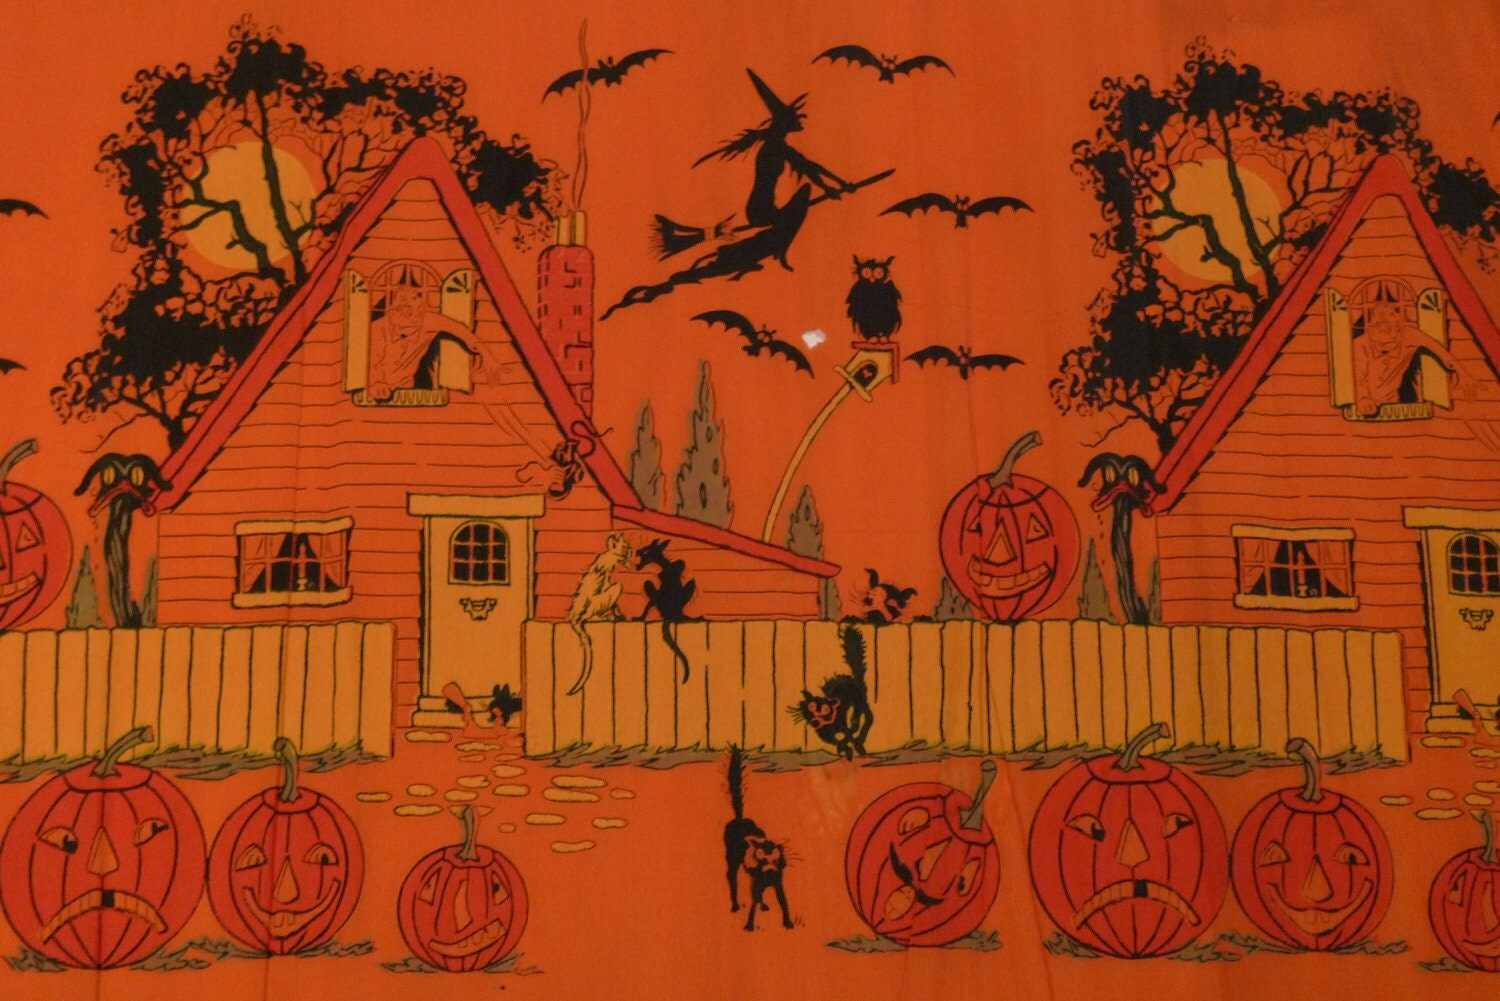 haunted america essay A haunted house: treasures of life essays: over 180,000 a haunted house: treasures of life essays, a haunted house: treasures of life term papers, a haunted house.